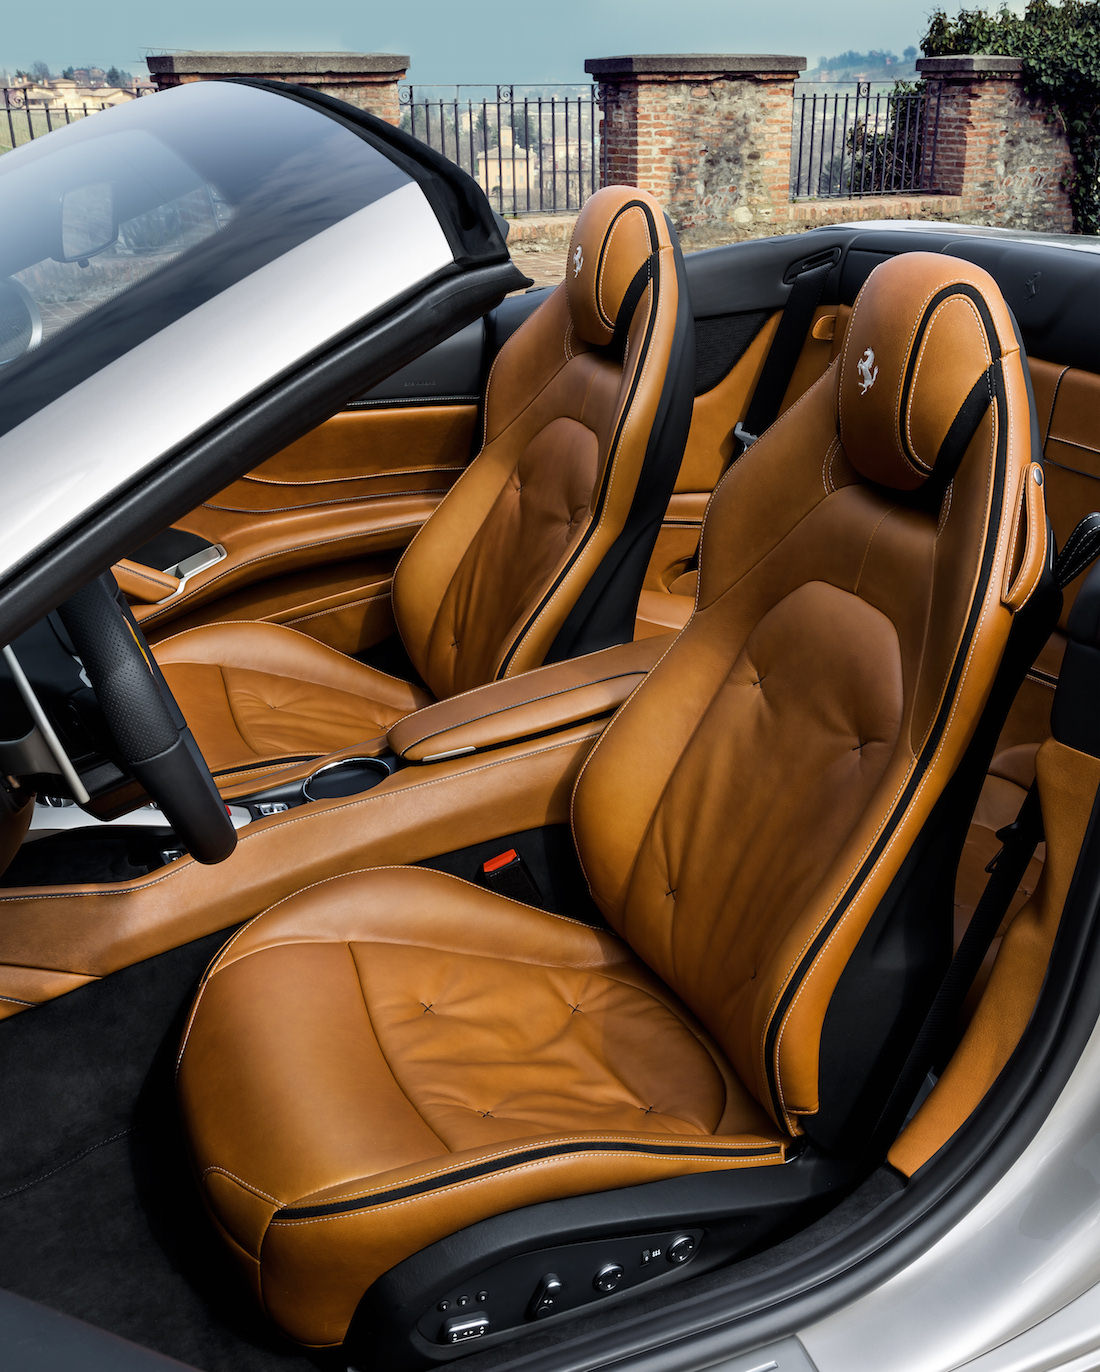 ferrari-california-t-tailor-made-shangai-4